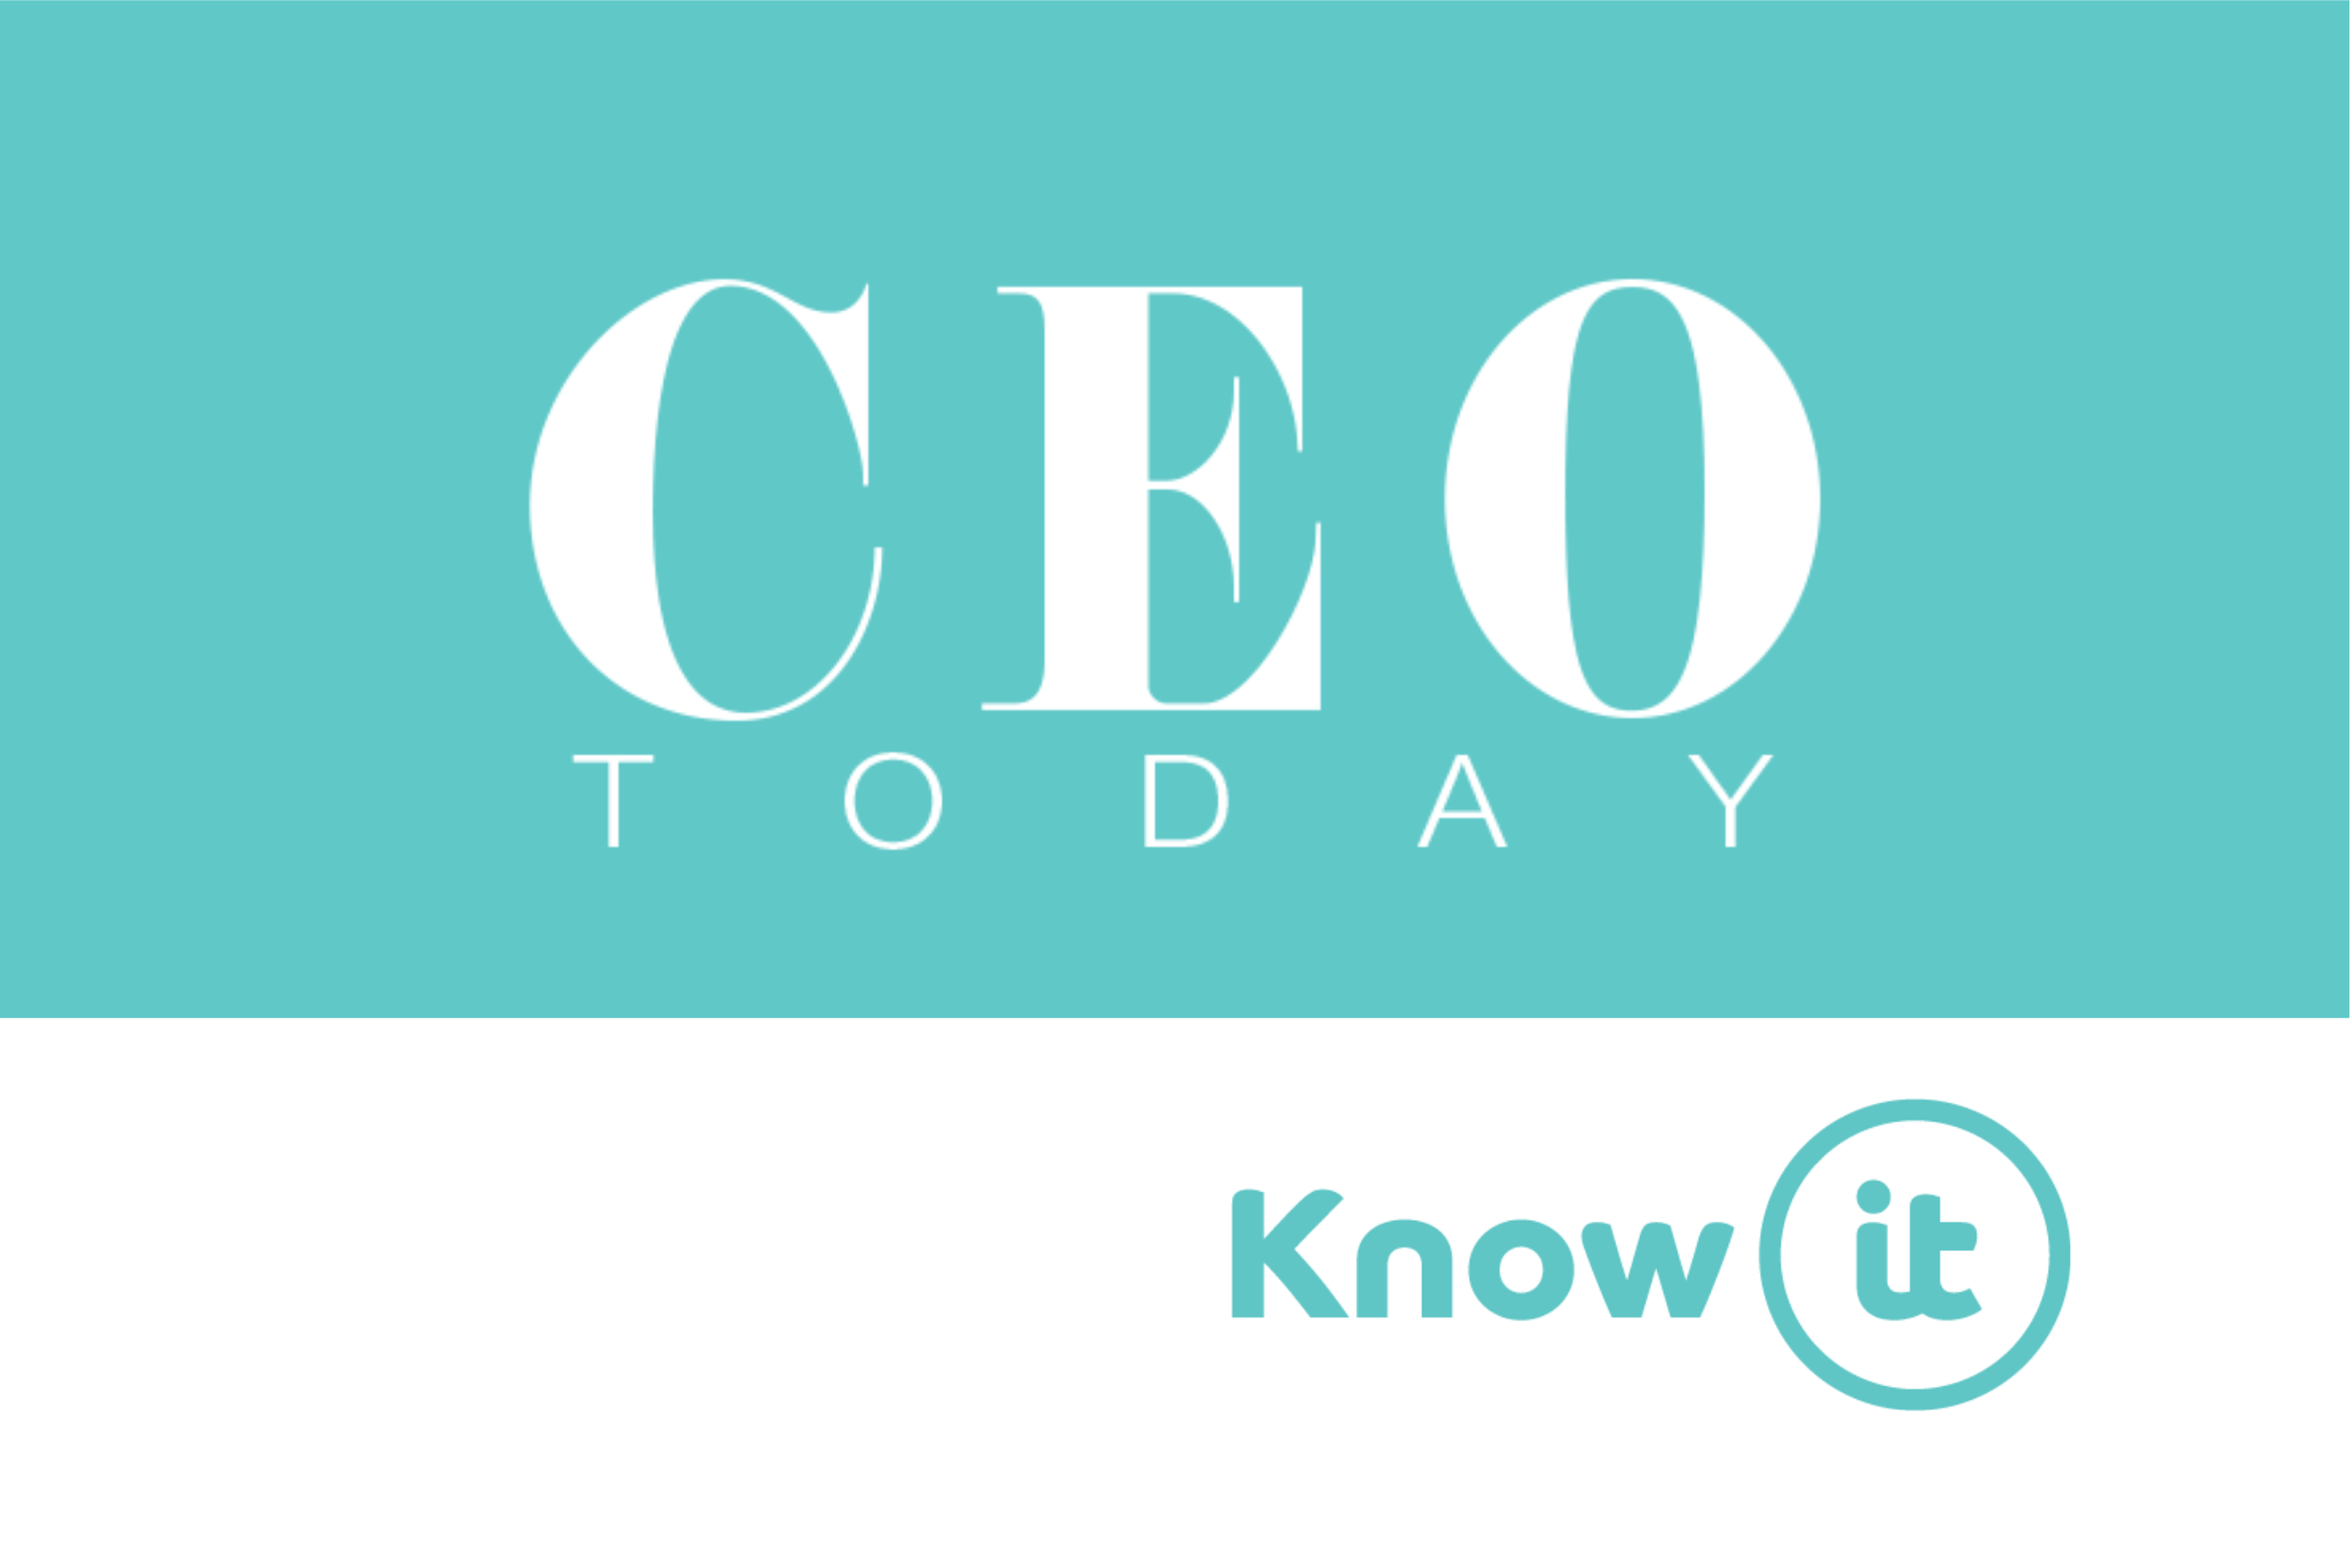 know-it x ceo today